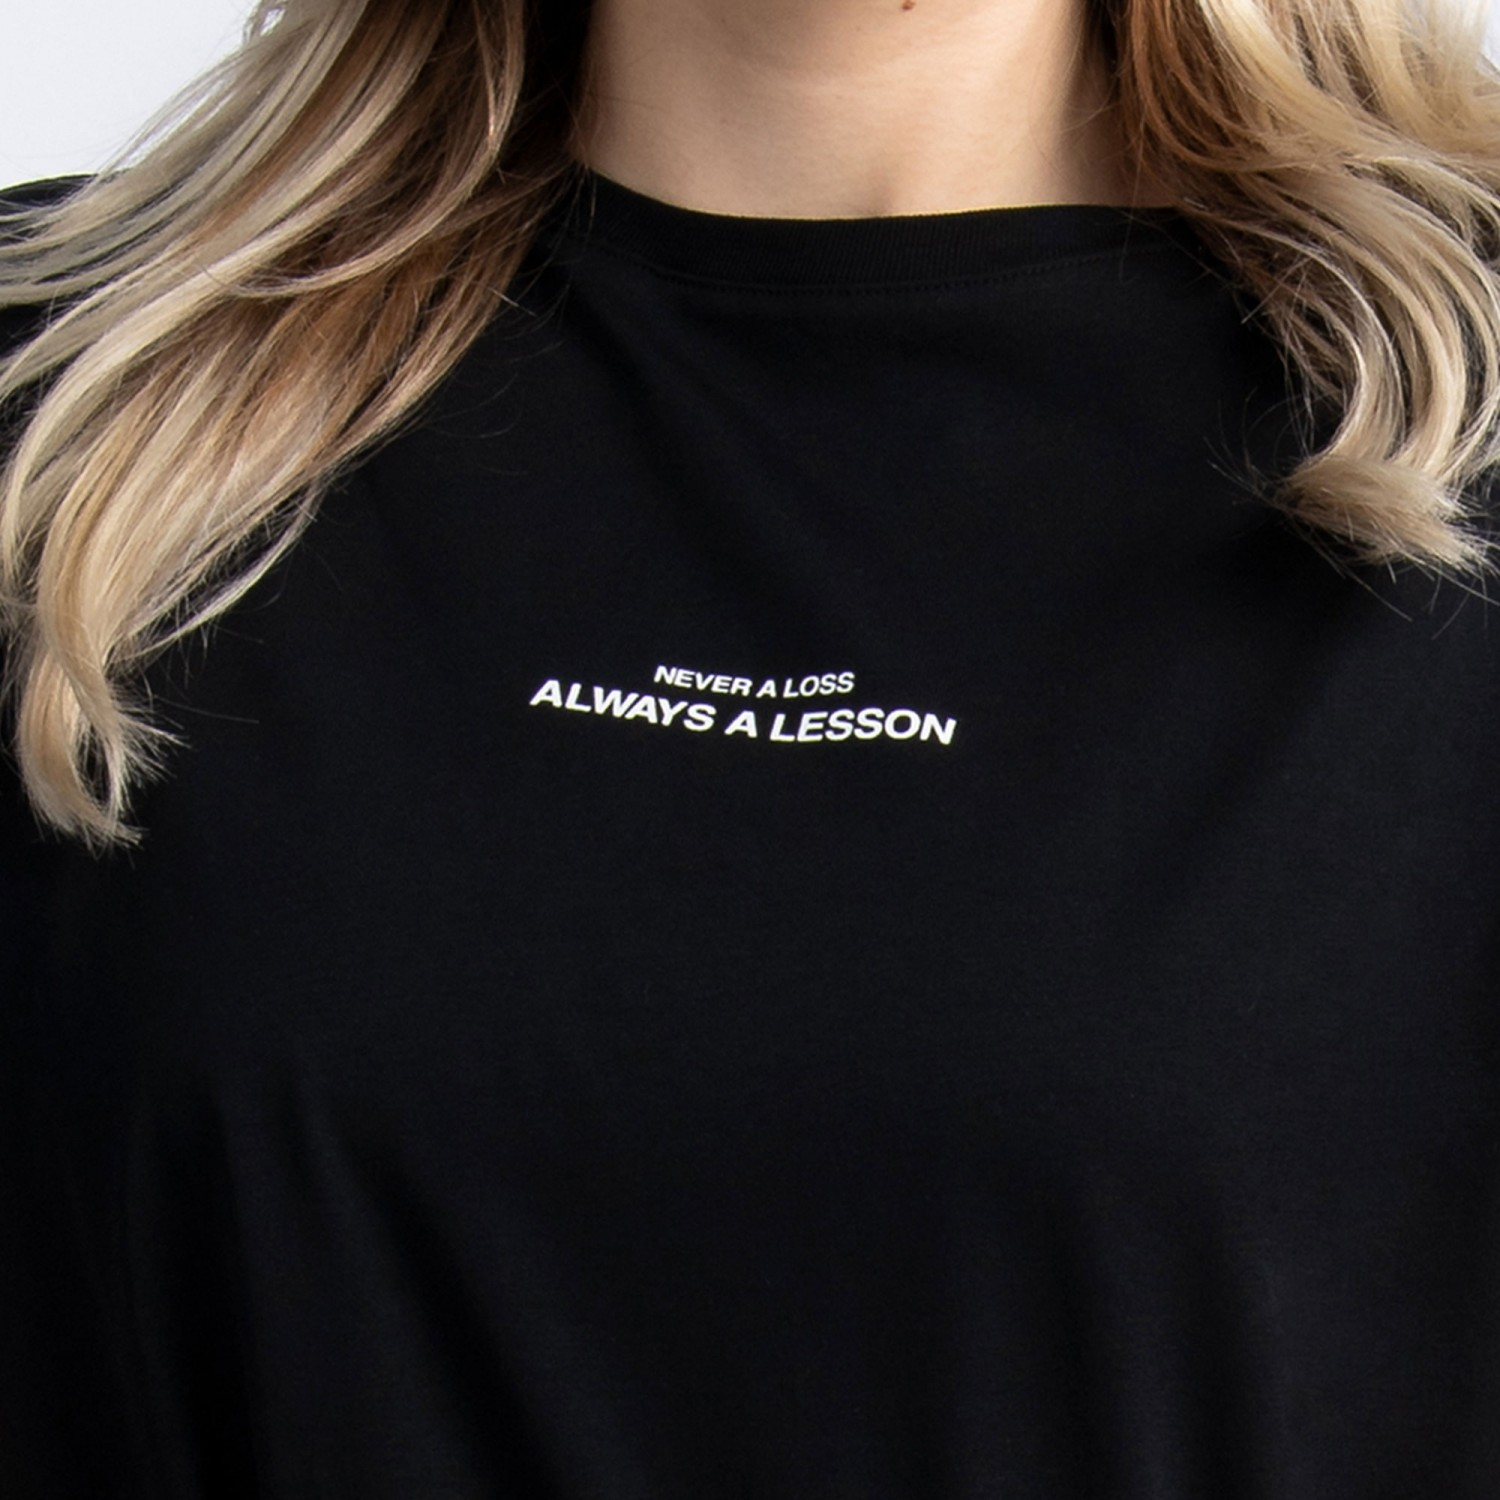 """Never a Loss, Always a Lesson"" T-Shirt In Black Cotton"